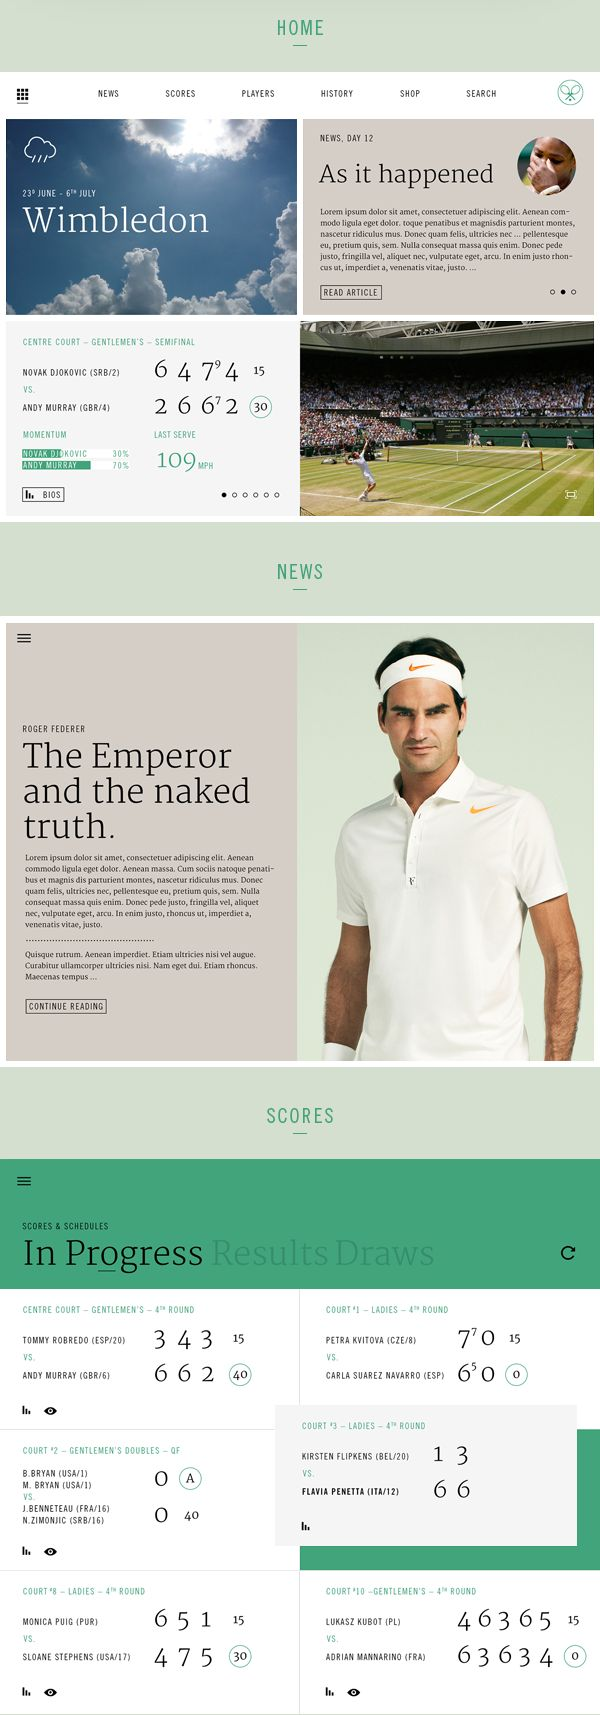 T shirt design app for ipad - Ipad App Concept And Design For The Tennis Championships In Wimbledon